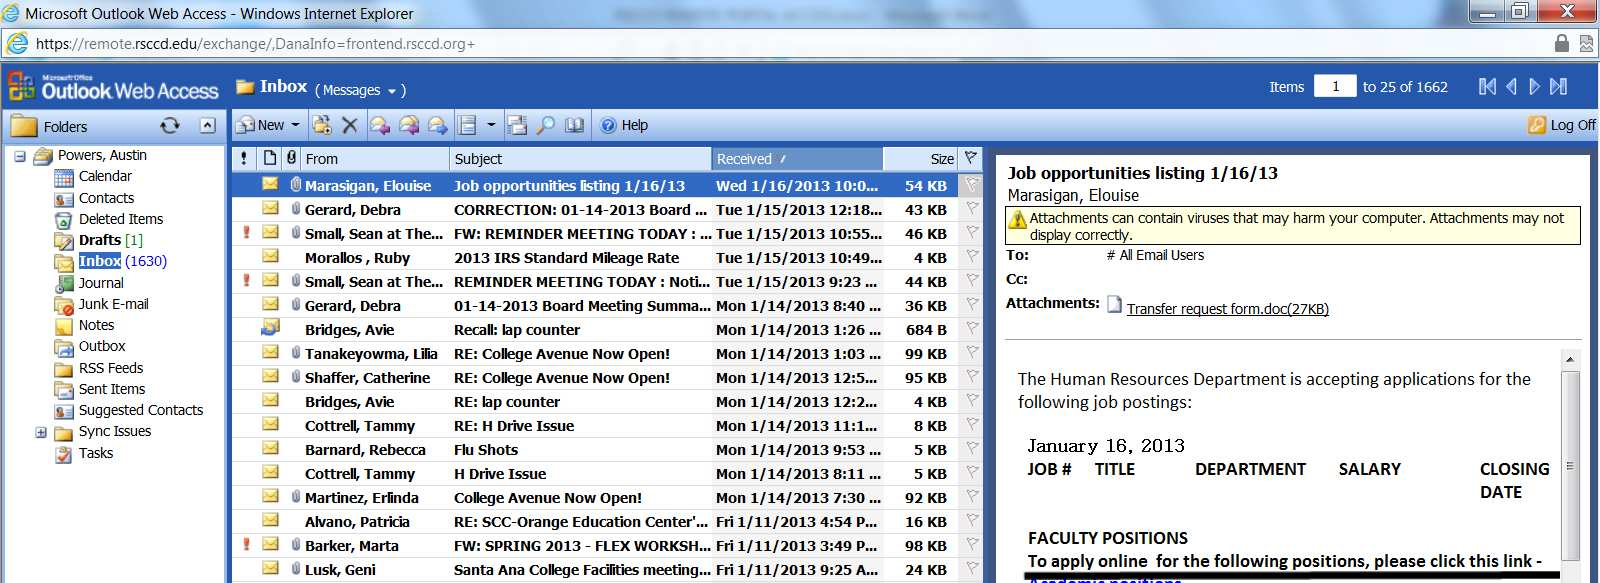 Outlook Web Access will open in a new browser window. 61. Mailbox view is indicated next to the Inbox in the header.